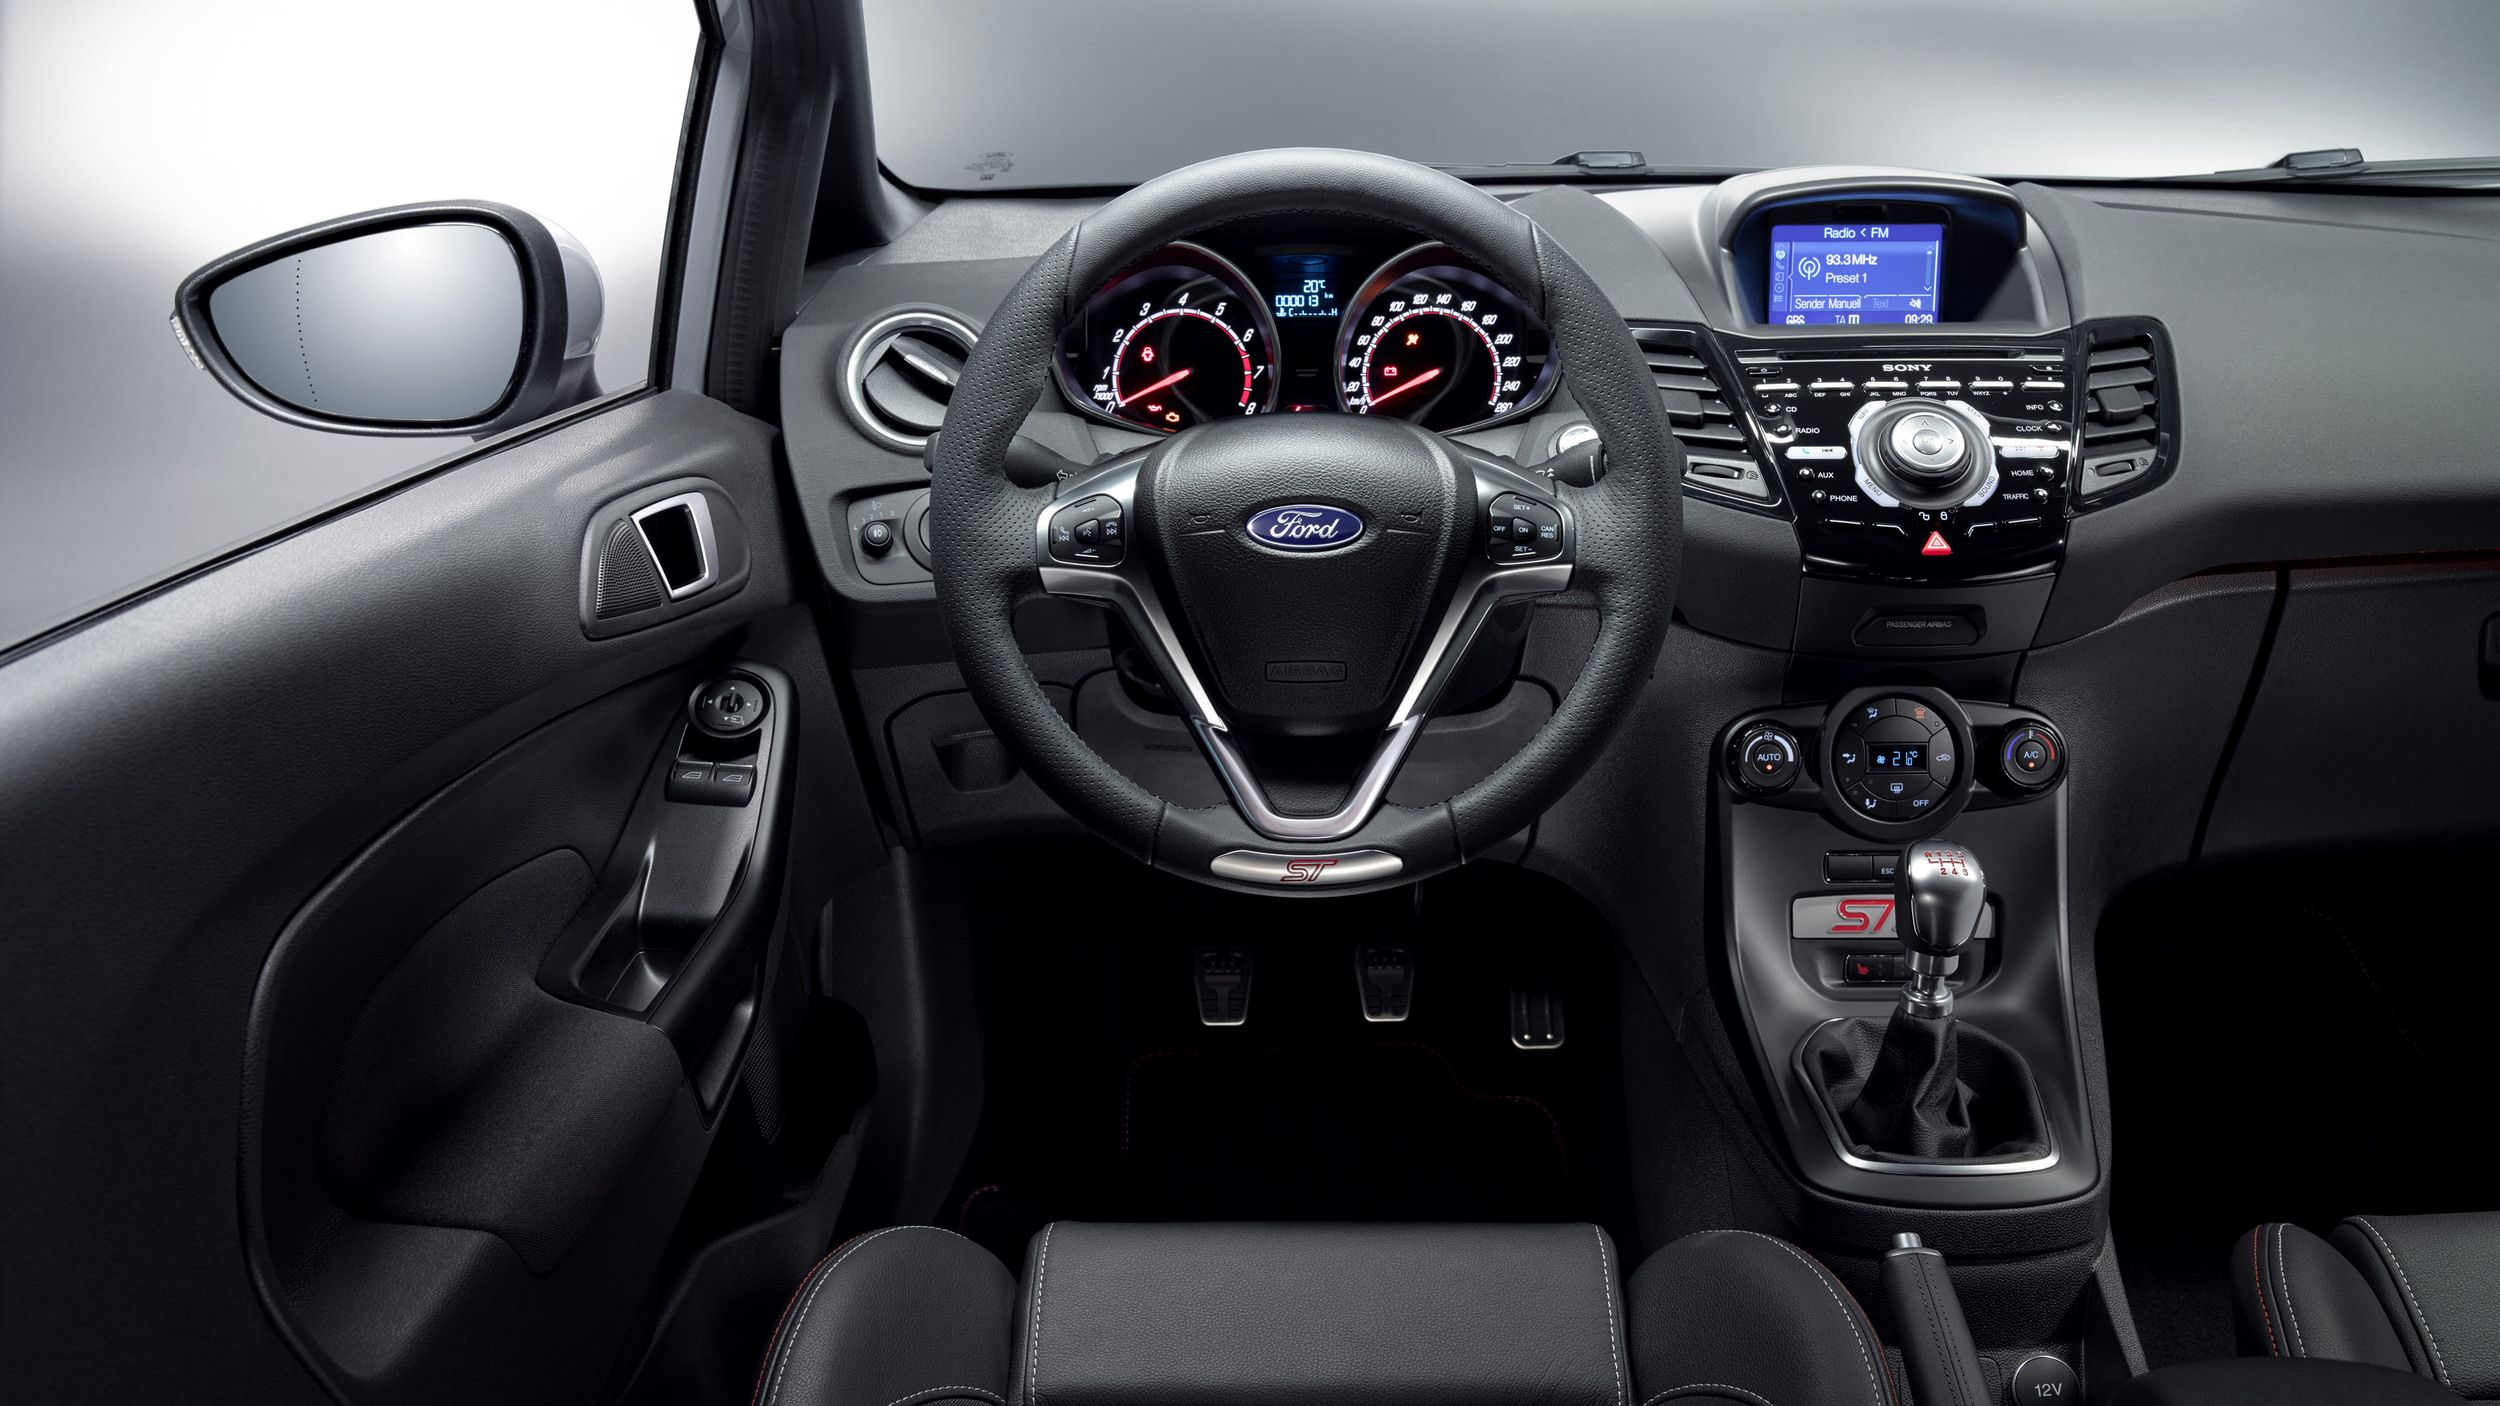 Ford Fiesta St200 Adds More Spice To A Great Hot Hatch Ford Fiesta Ford Ford Fiesta St